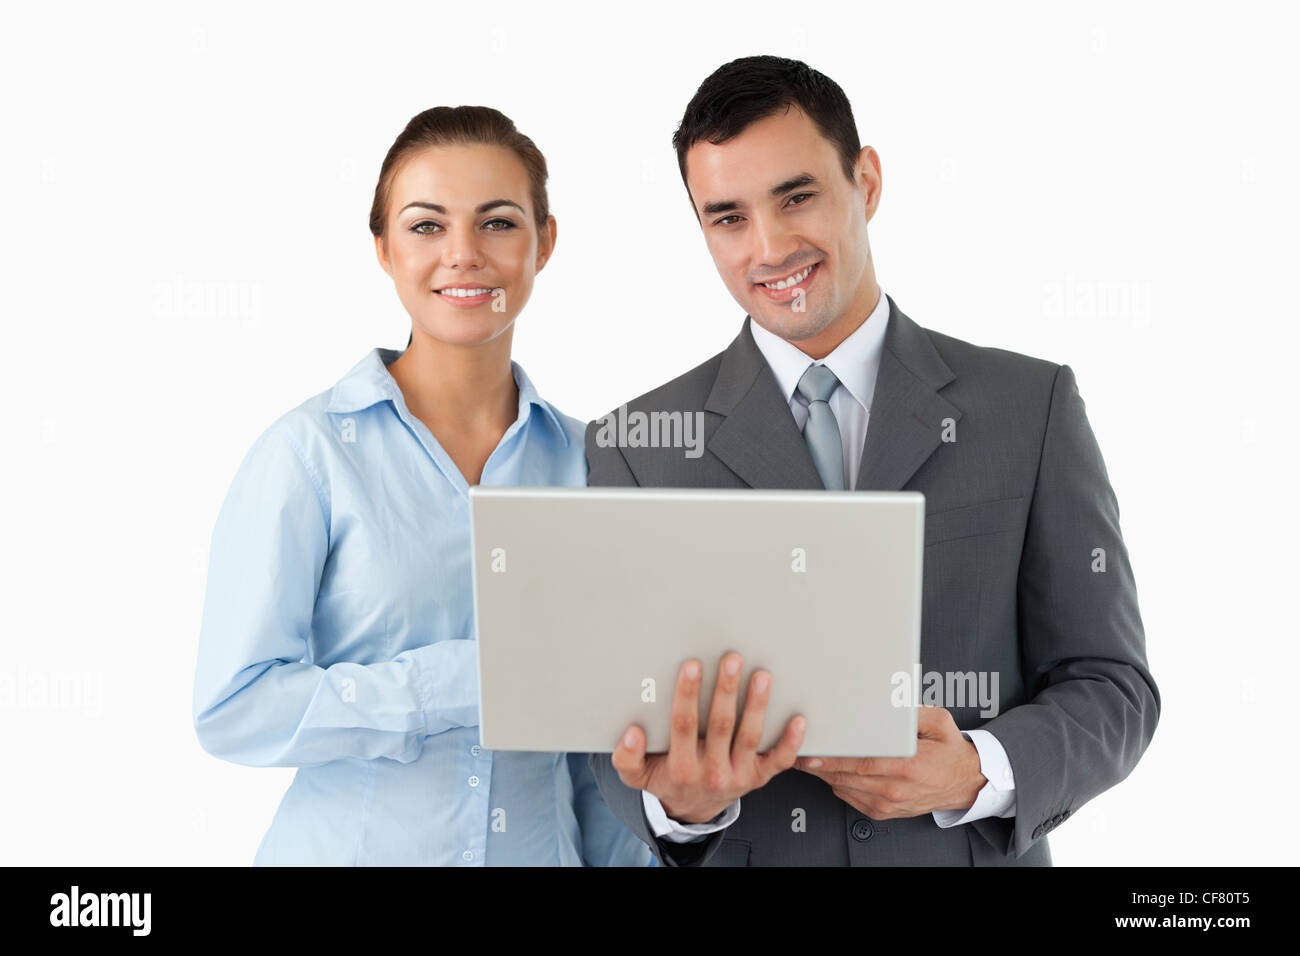 Smiling business partners with laptop - Stock Image